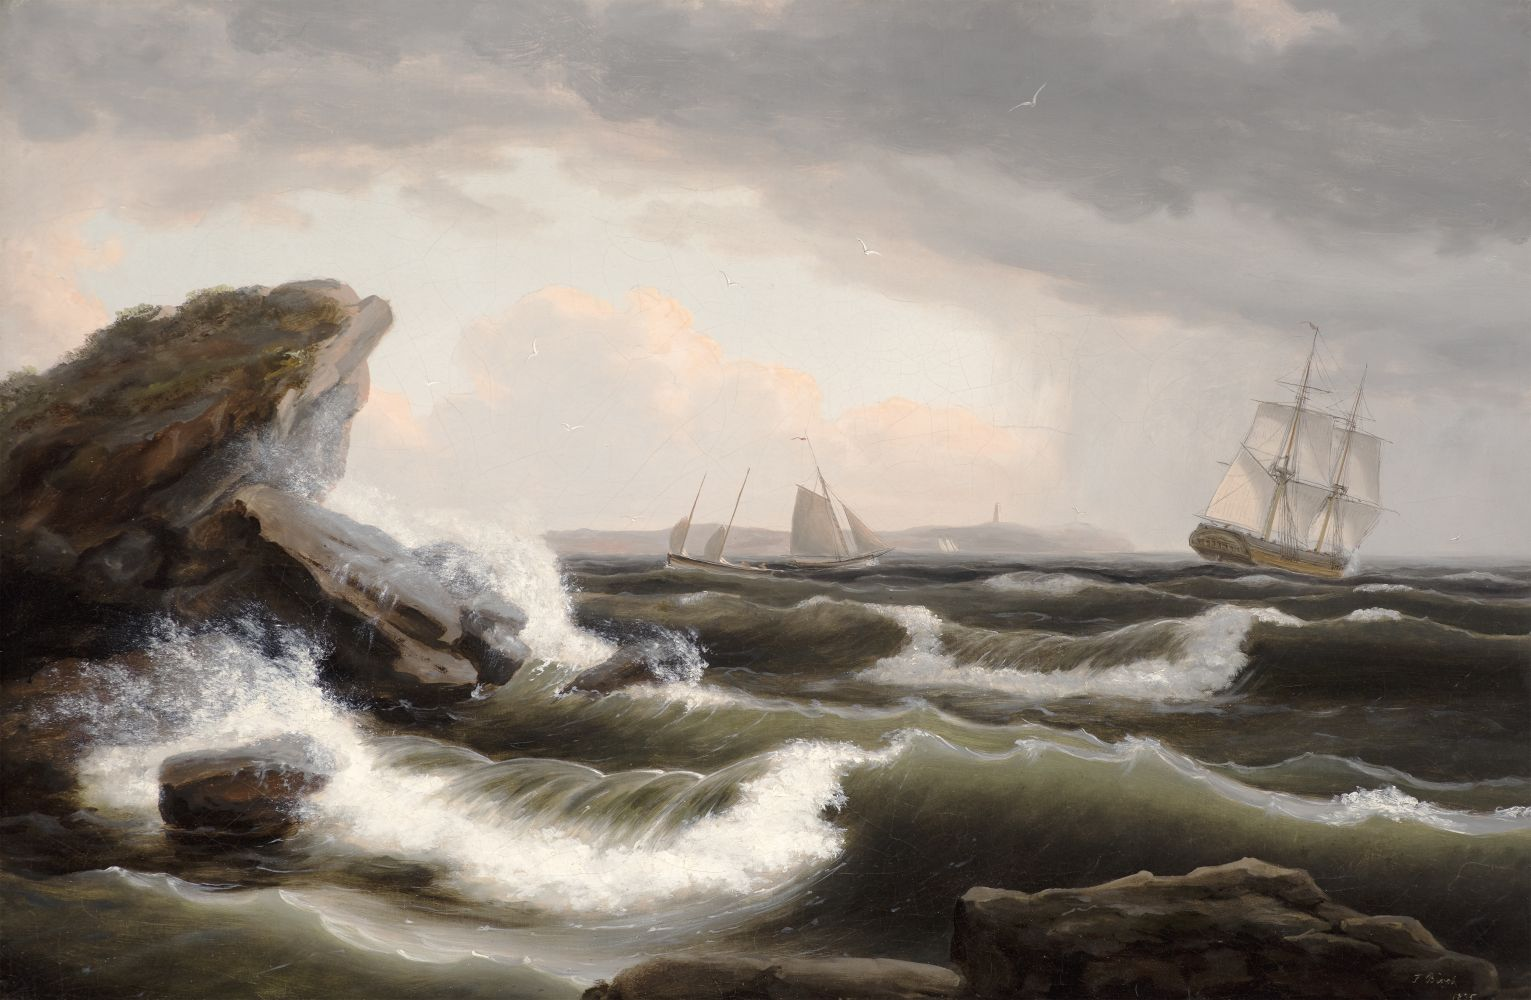 Stormy seascape off the coast of Maine by Thomas Birch.